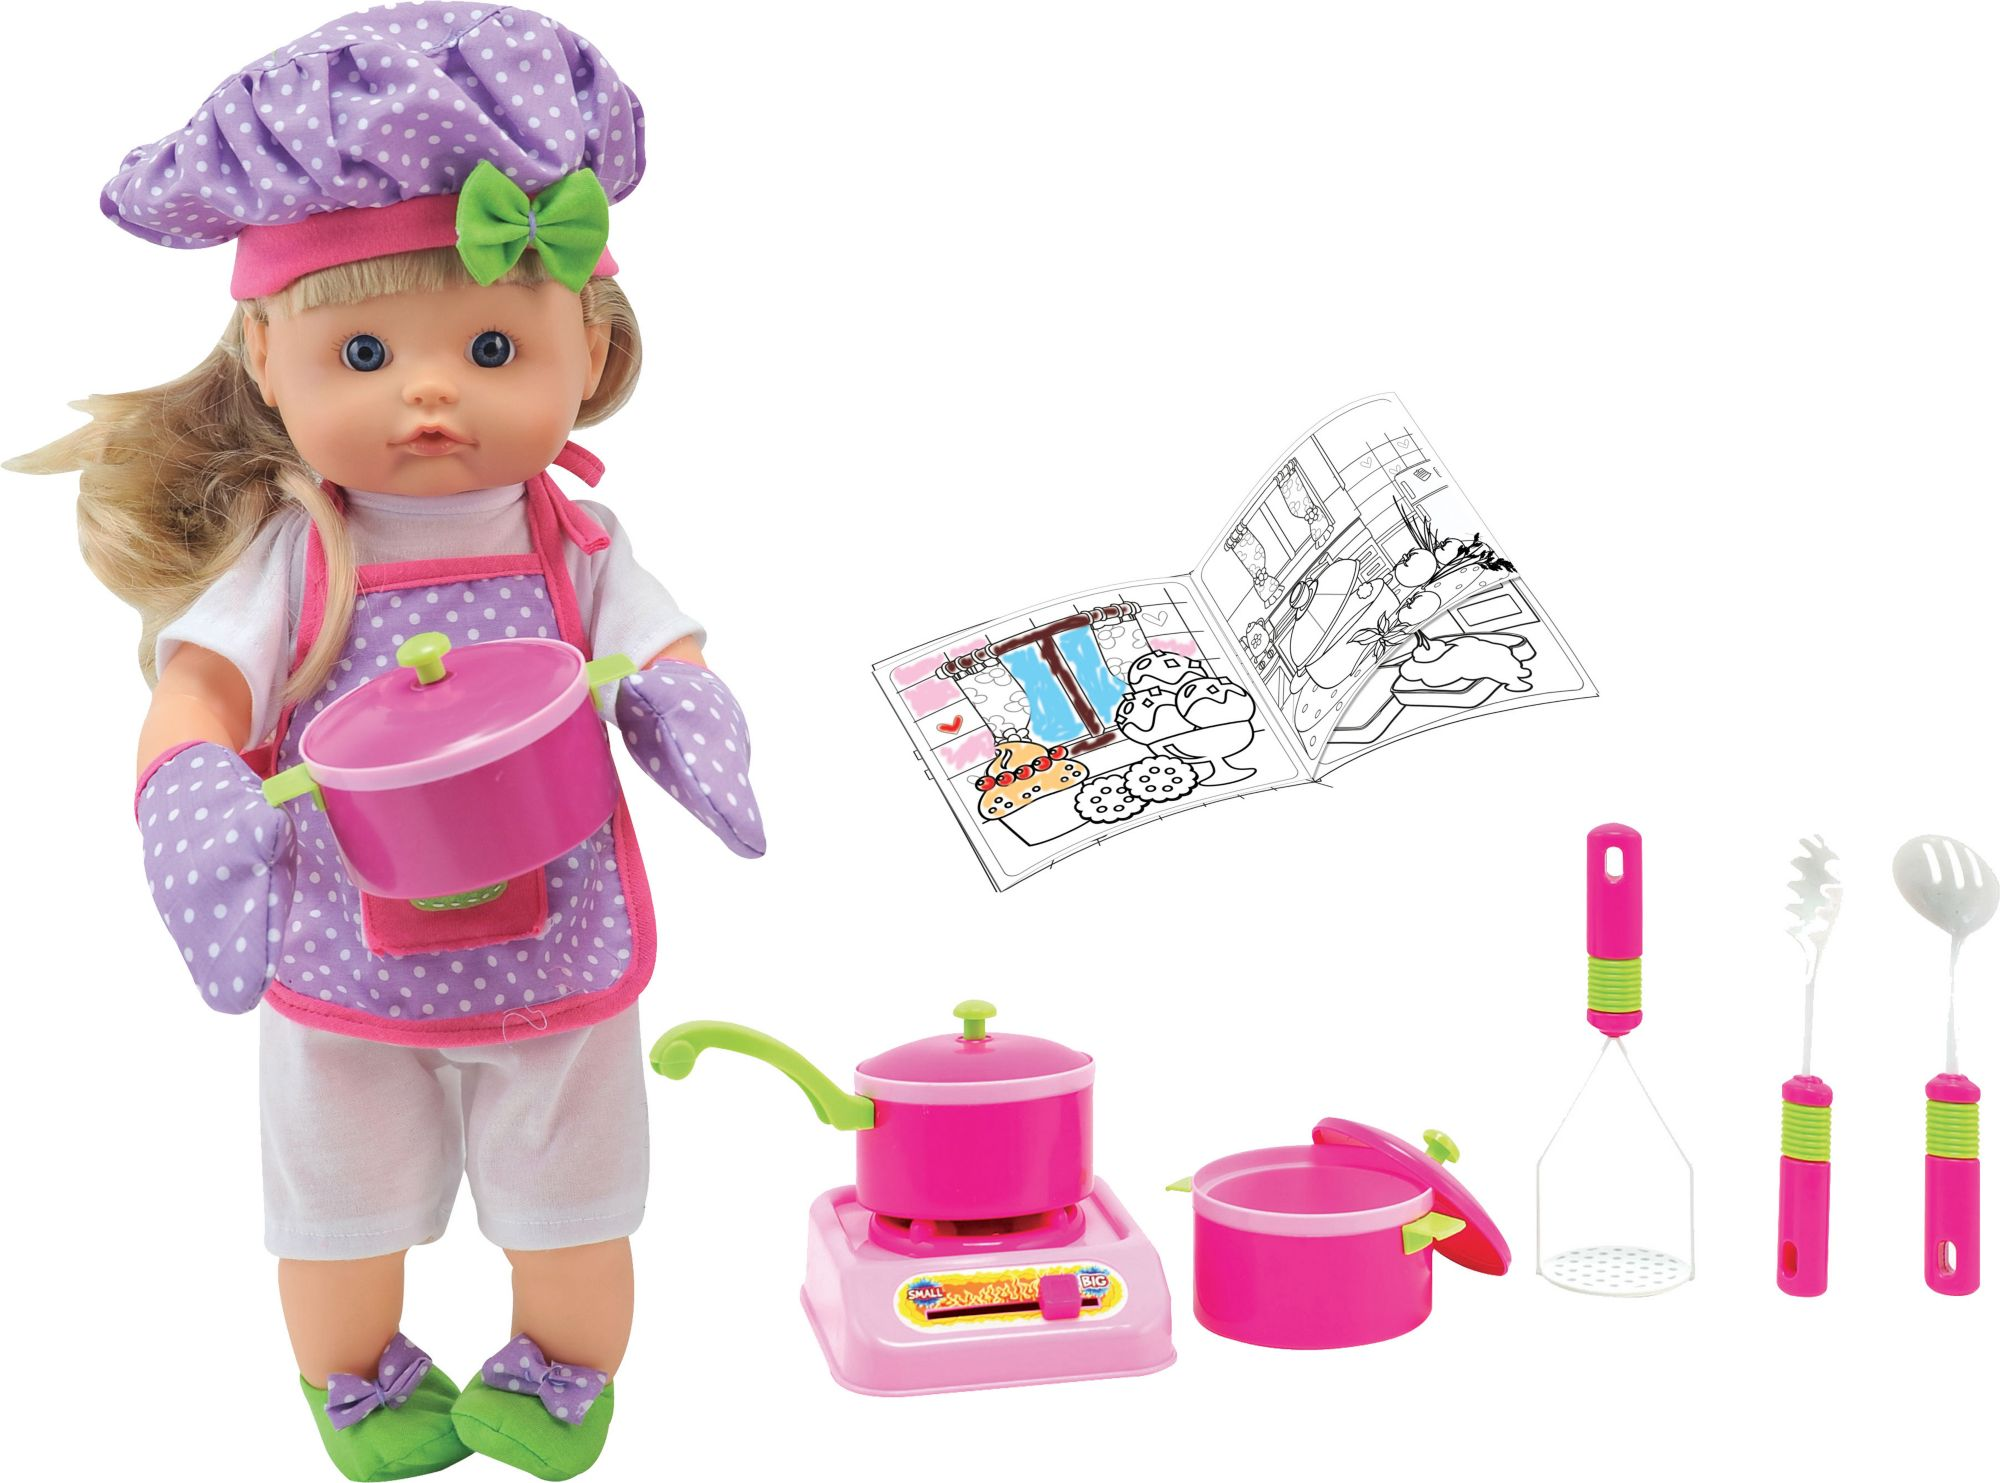 DIMIAN Dimian Puppe mit Funktion, »Nena Chef mit Kochaccessoires«